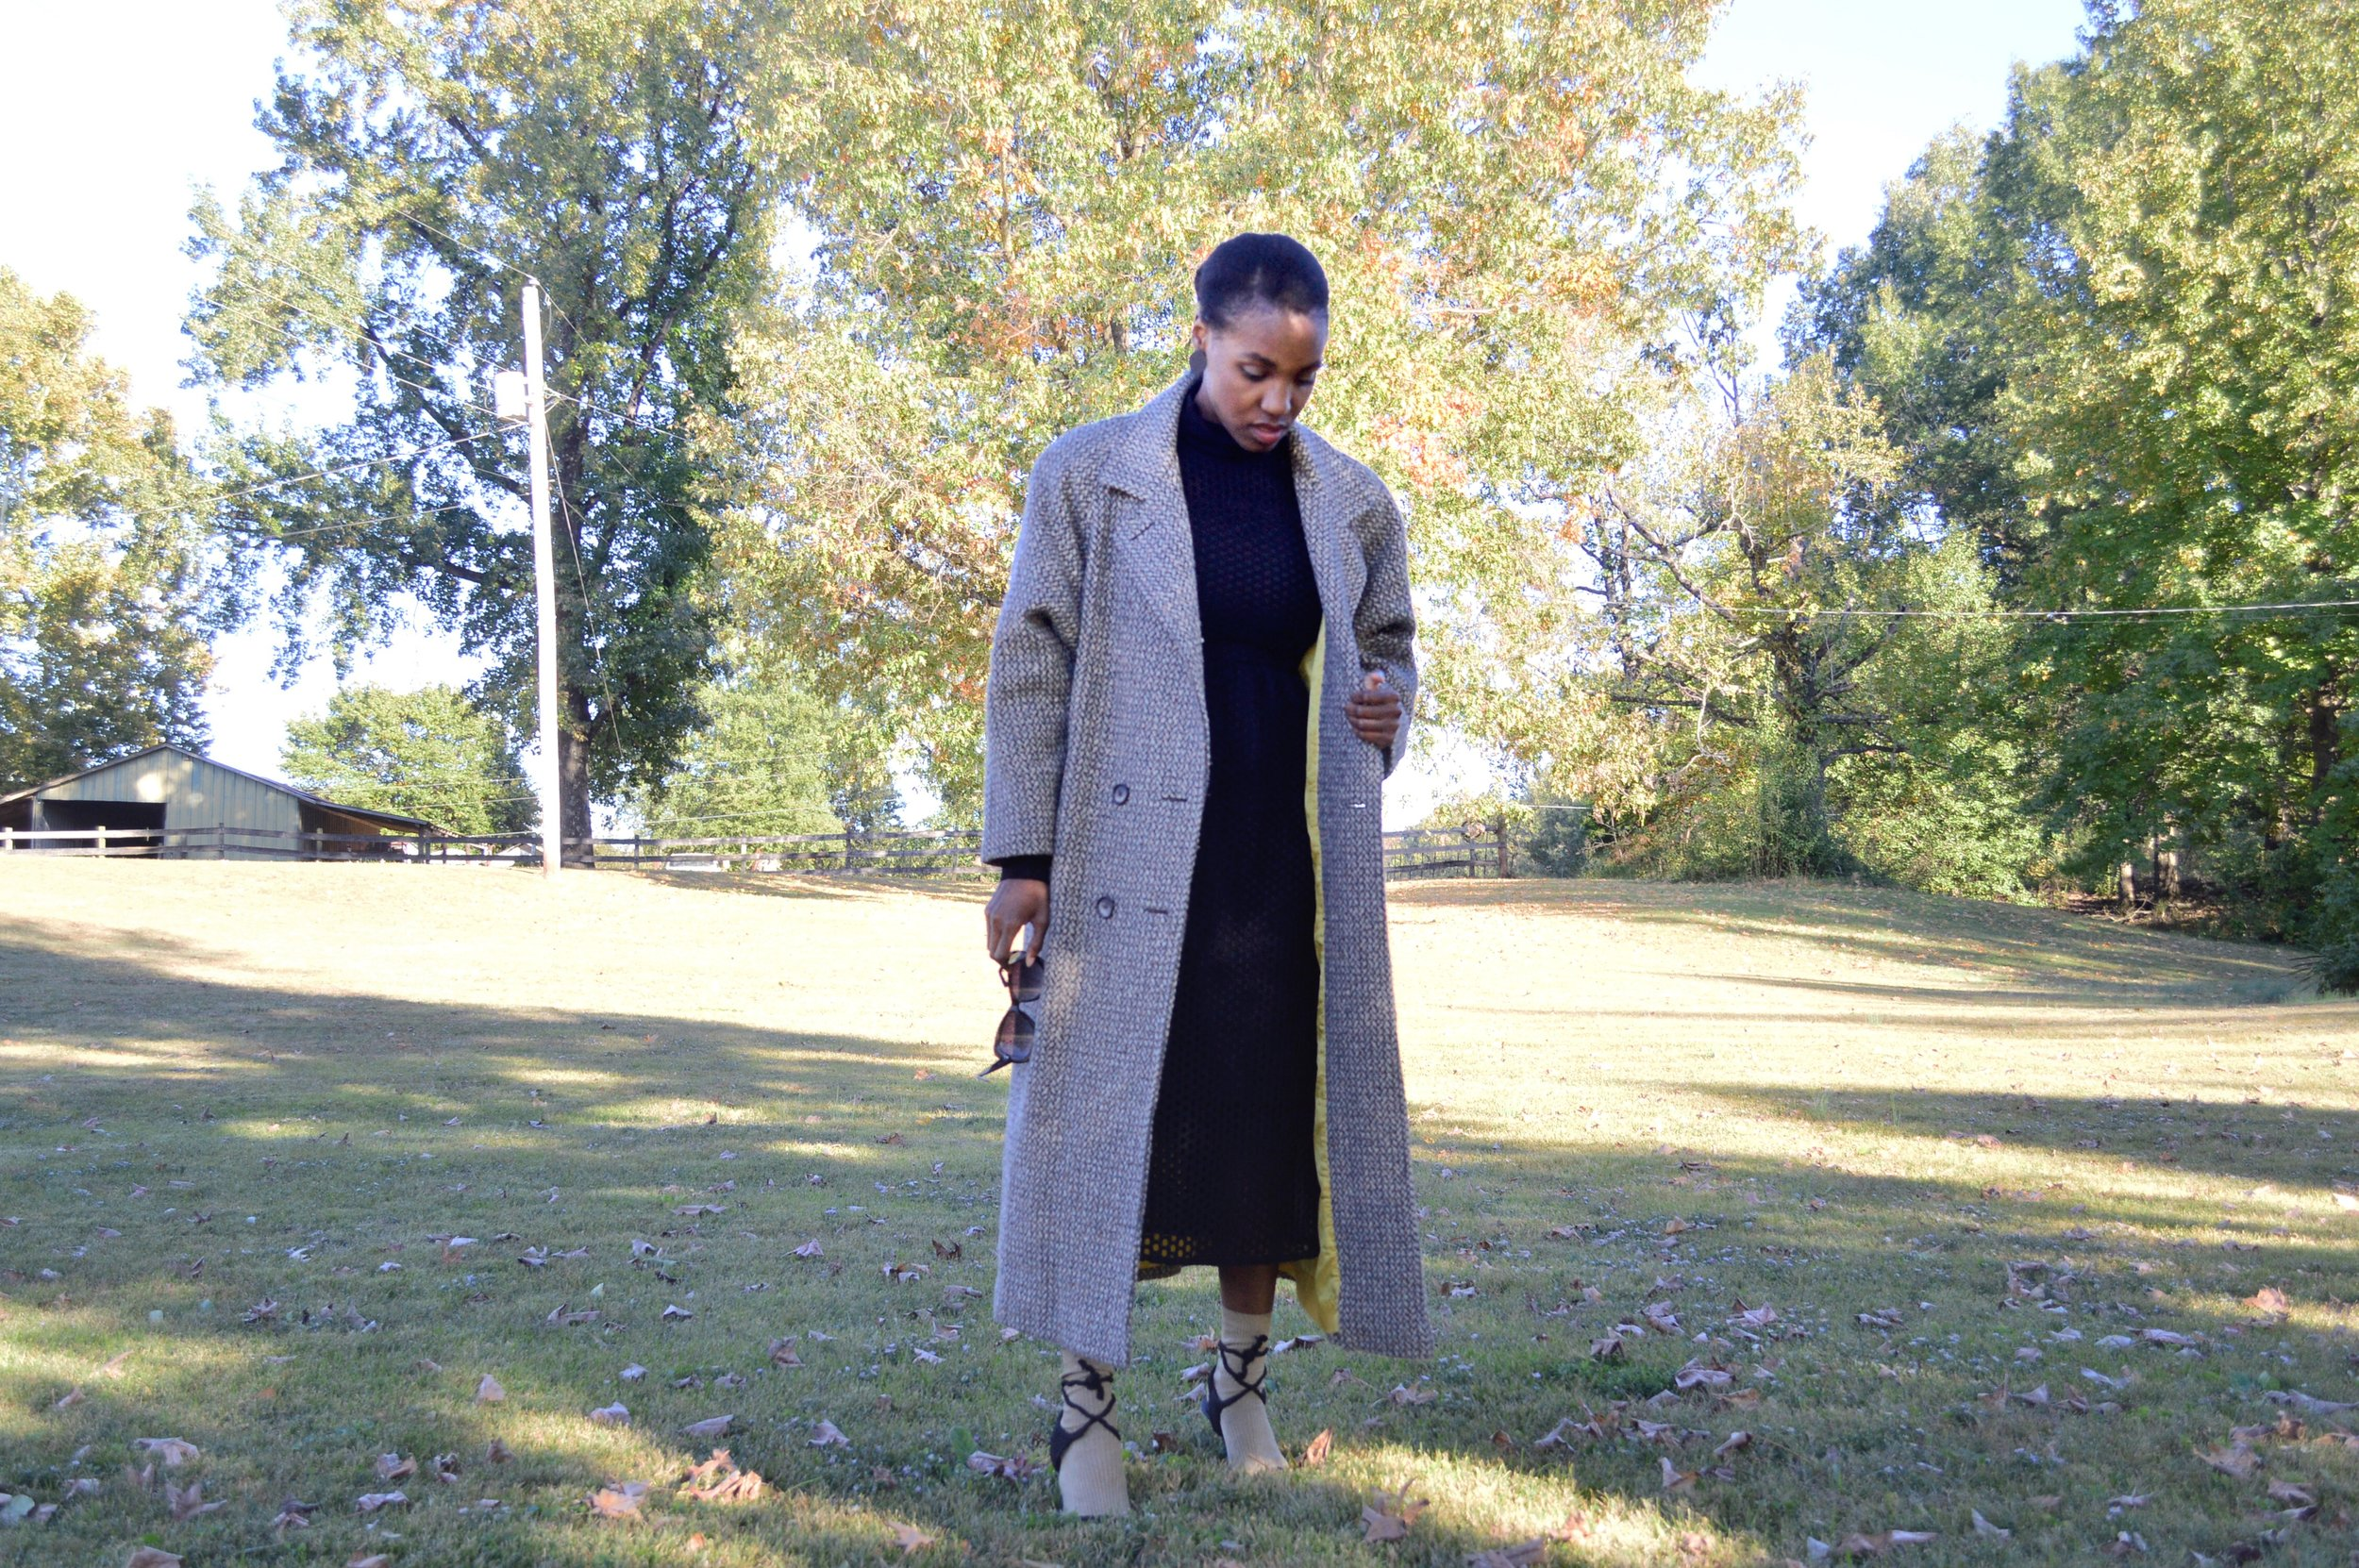 outfit details - coat: thrifted ( here )( here );dress: H&M ( here )( here ); socks: H&M ( here ); shoes: thrifted ( here )( here ); earrings: H&M ( here )( here )